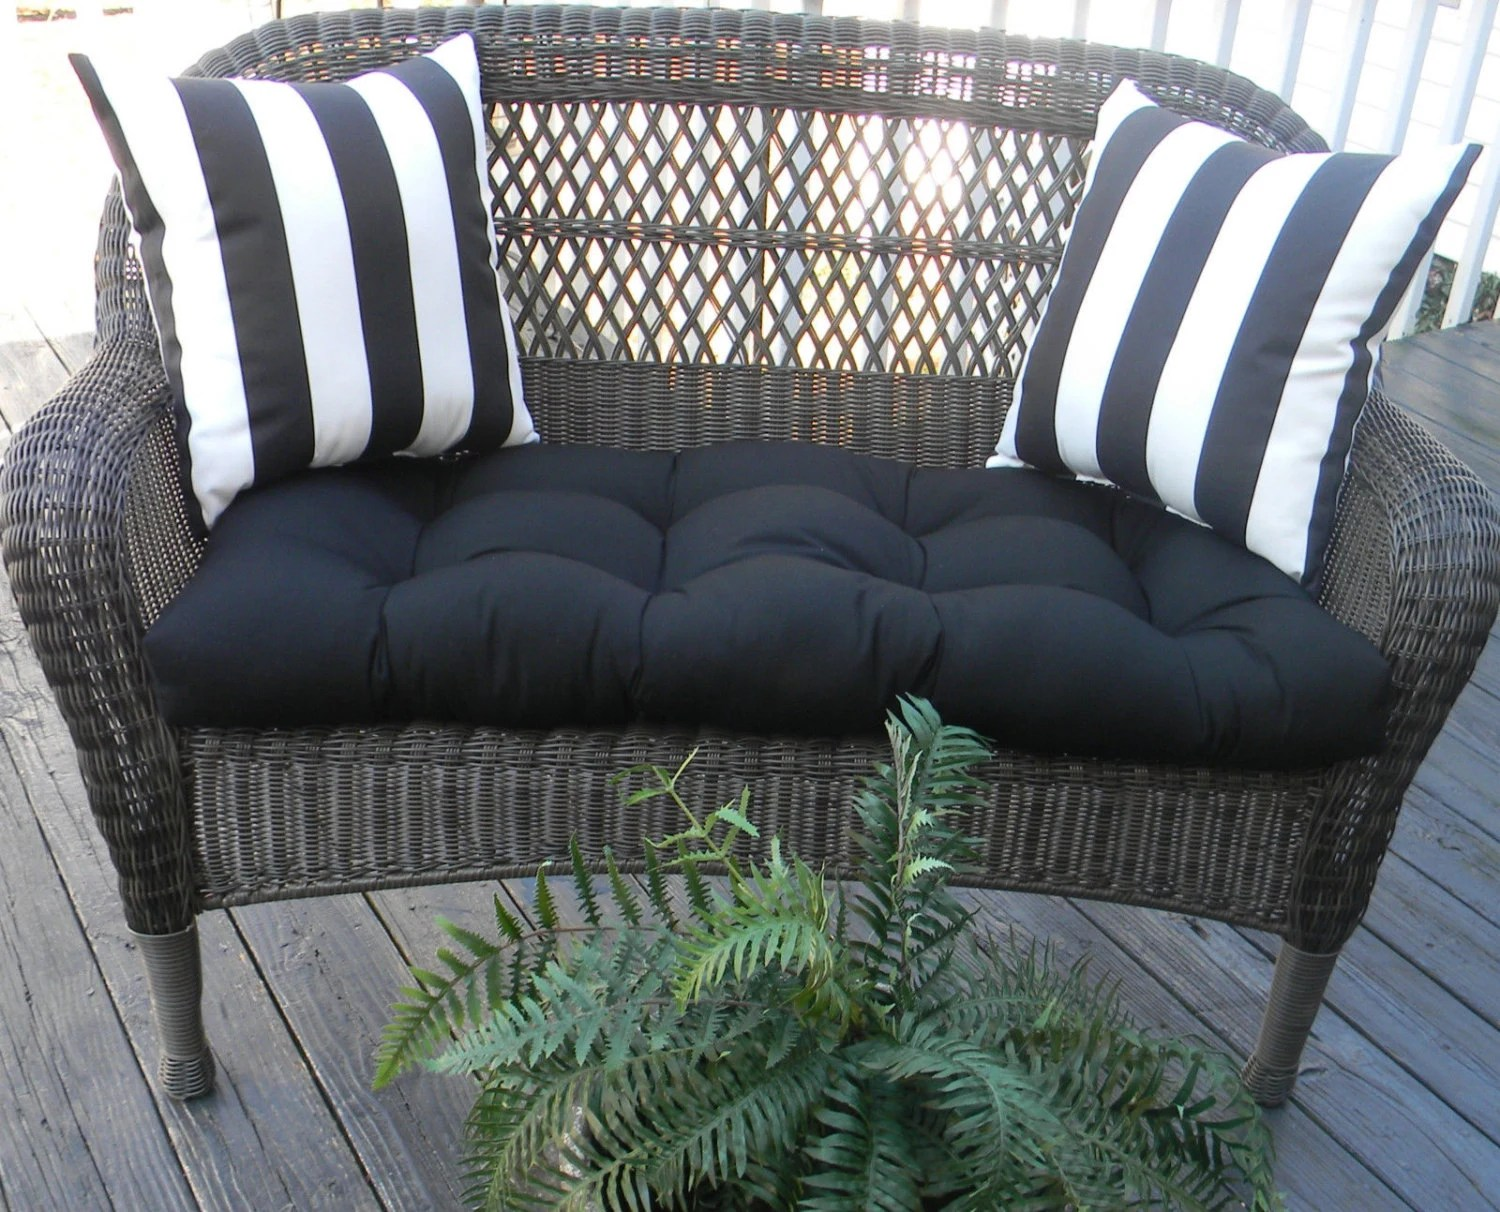 Indoor Outdoor Cushion 3 Pc Set For Wicker Loveseat Bench